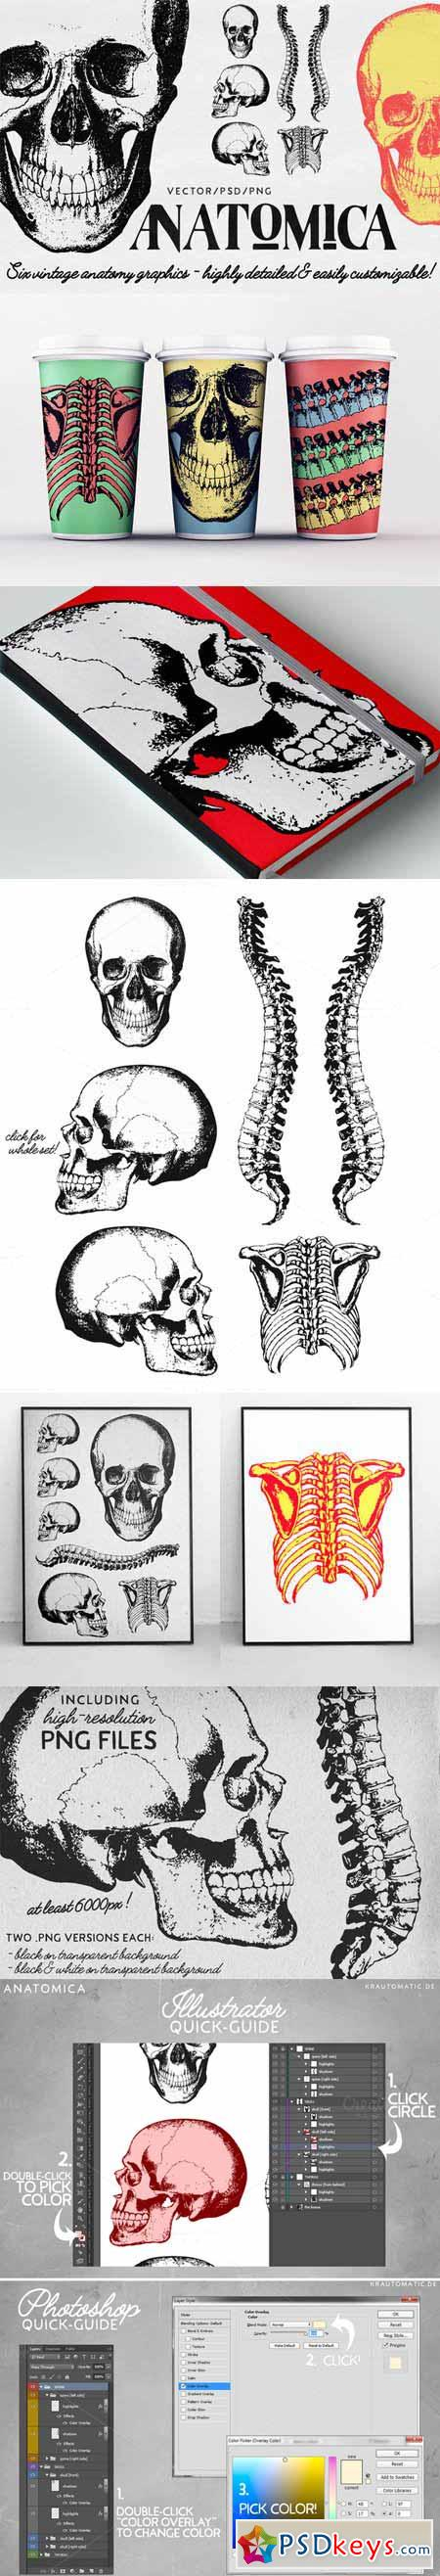 ANATOMICA - vector psd graphics pack 452779